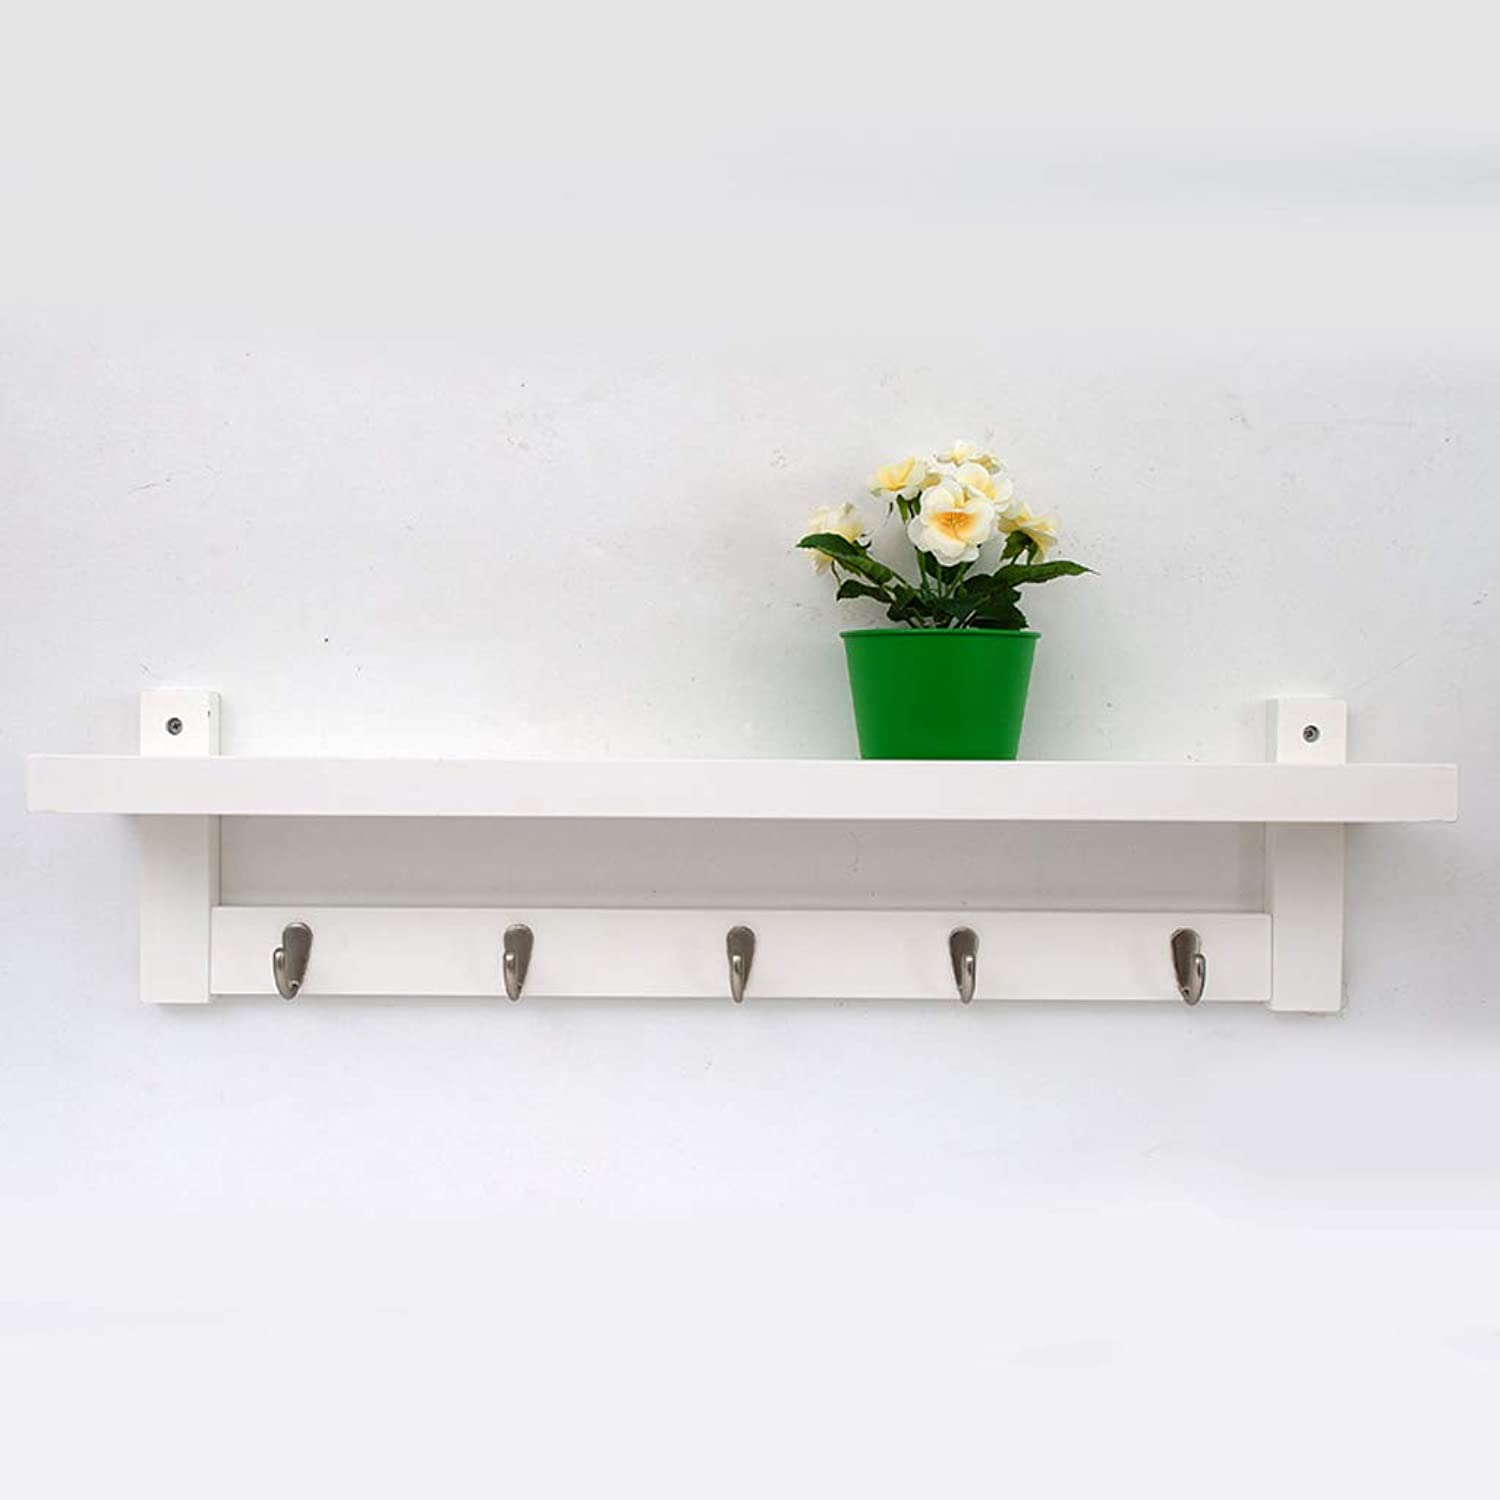 Coat Rack Wall Hanging Northern Europe Creative Hangers Solid Wood Wall Hanger (color   White)